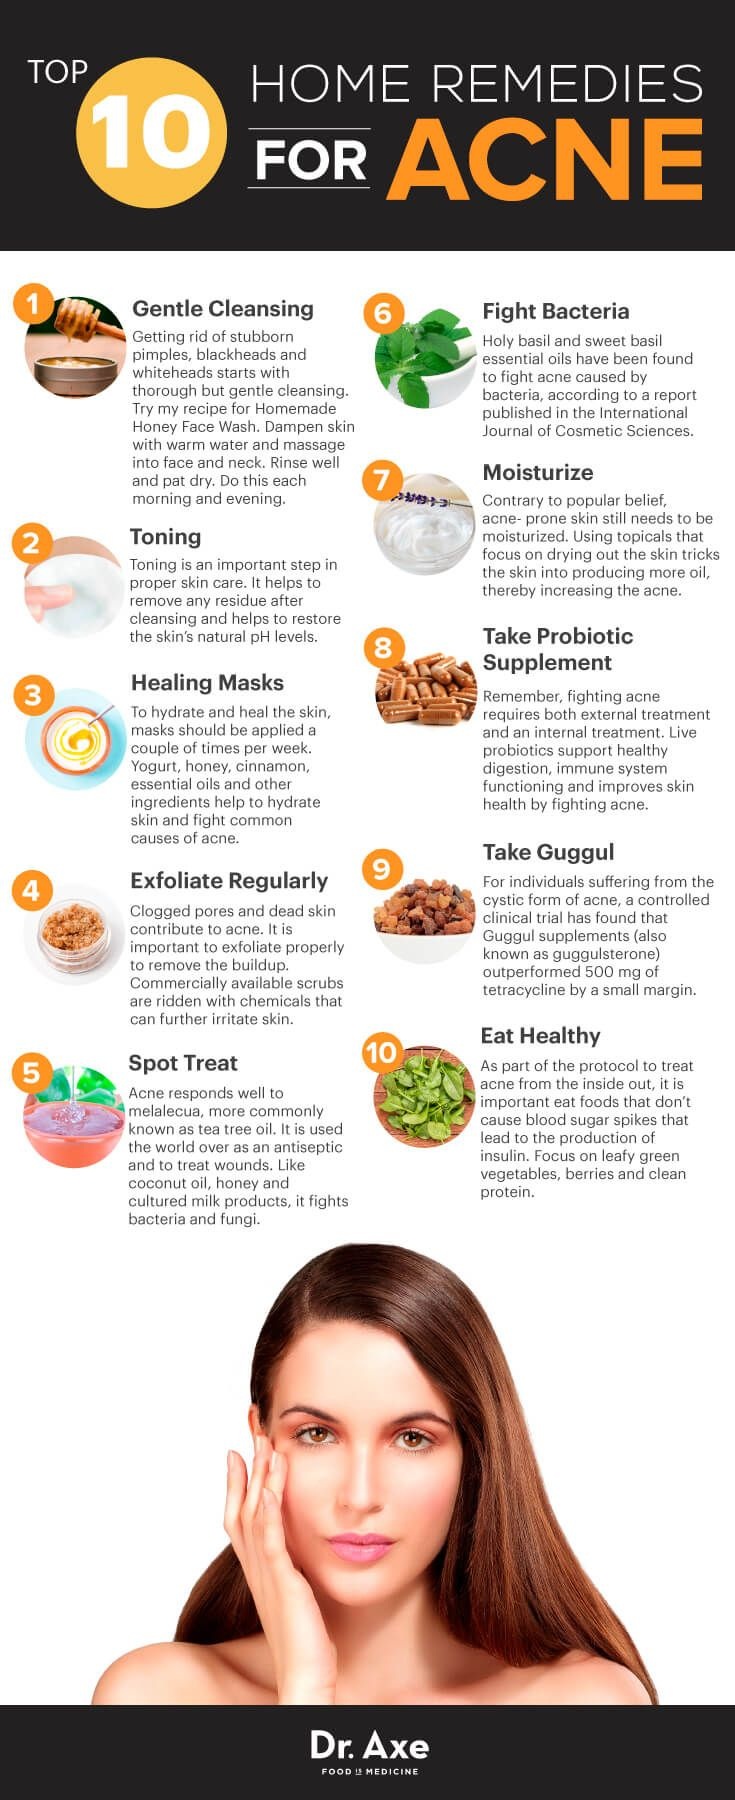 Home Remedies For Acne 10 Easy Ones That Work Con Immagini